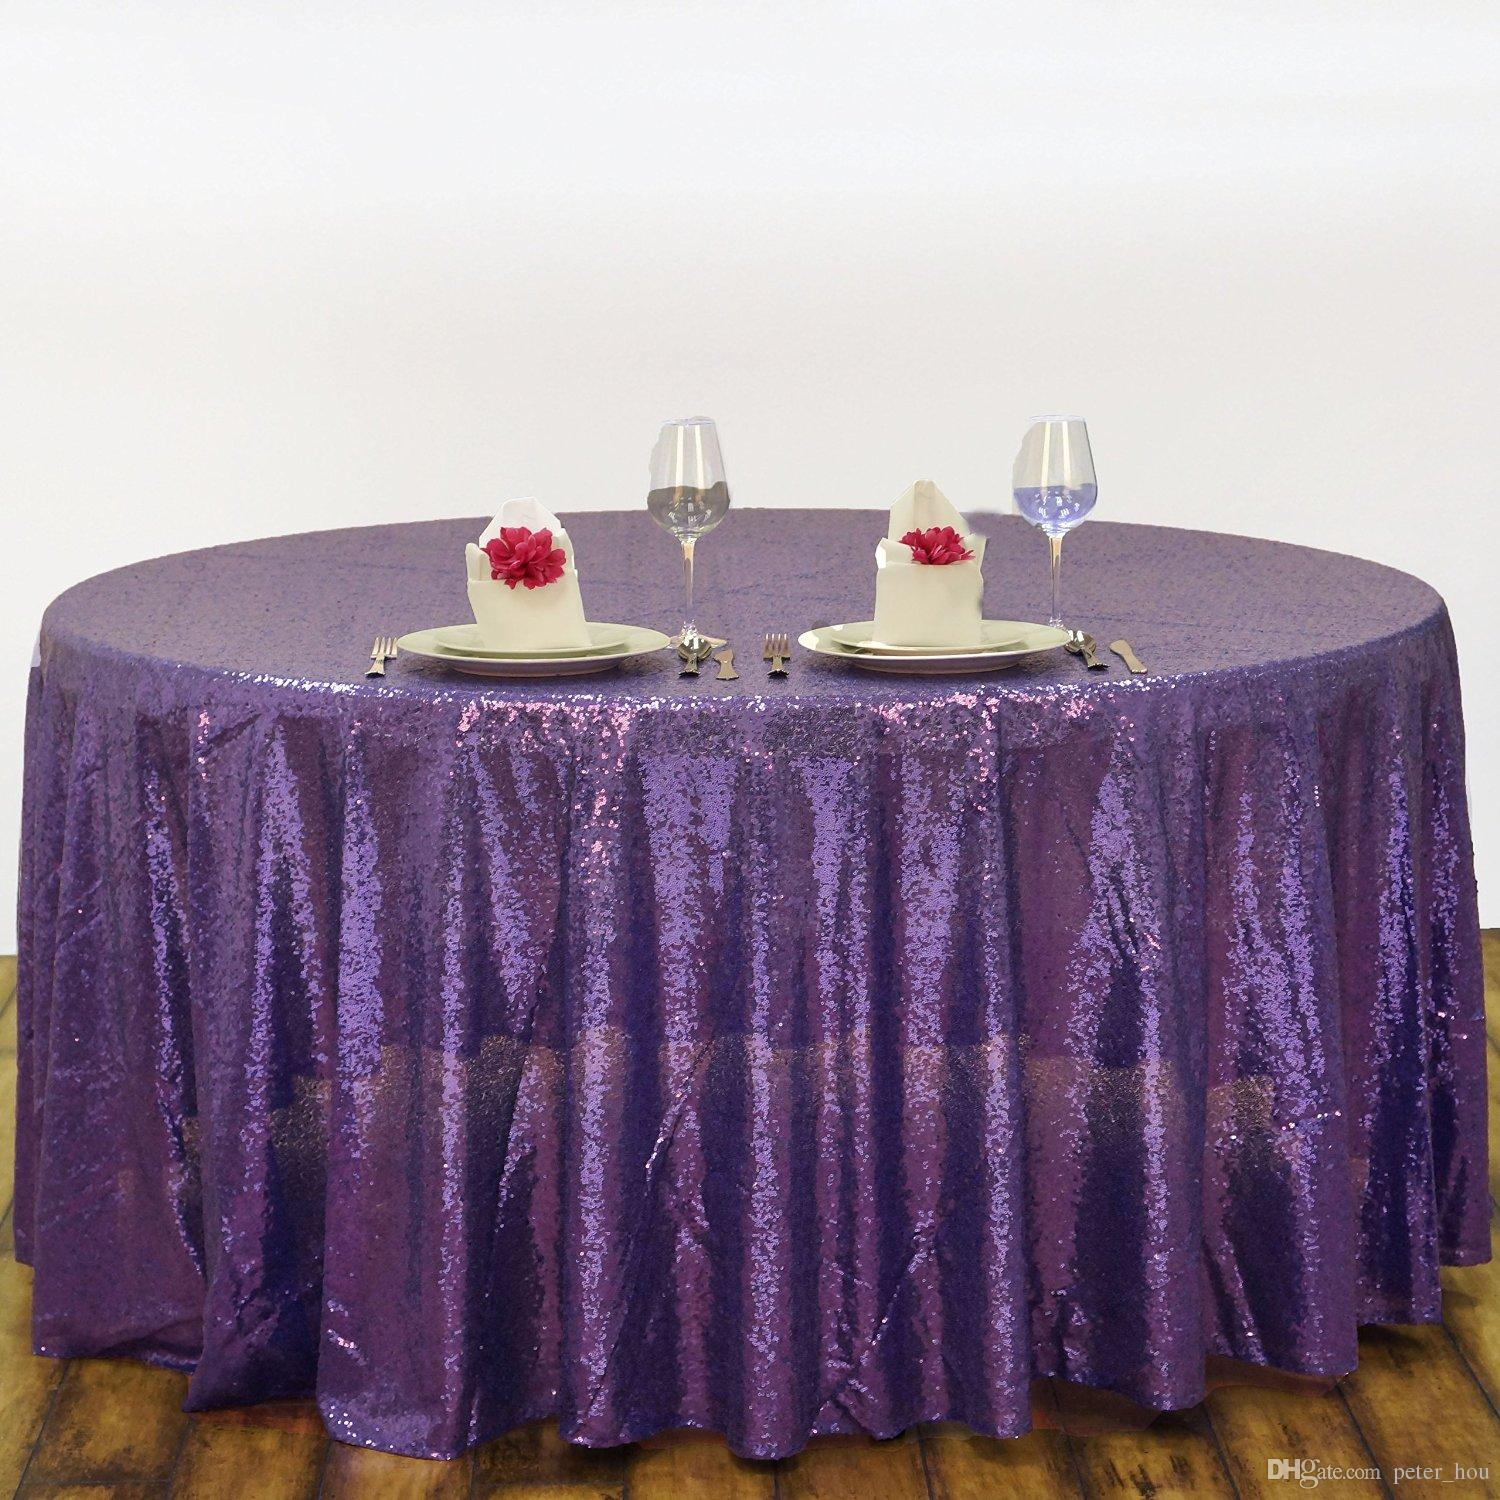 Buy From China 120u0027u0027 Round Purple Sequin Table Cover Wedding Cheap Sequin  Fabric Tablecloths For Parties Round Sequin Table Cover Sequin Table Cloth  For ...